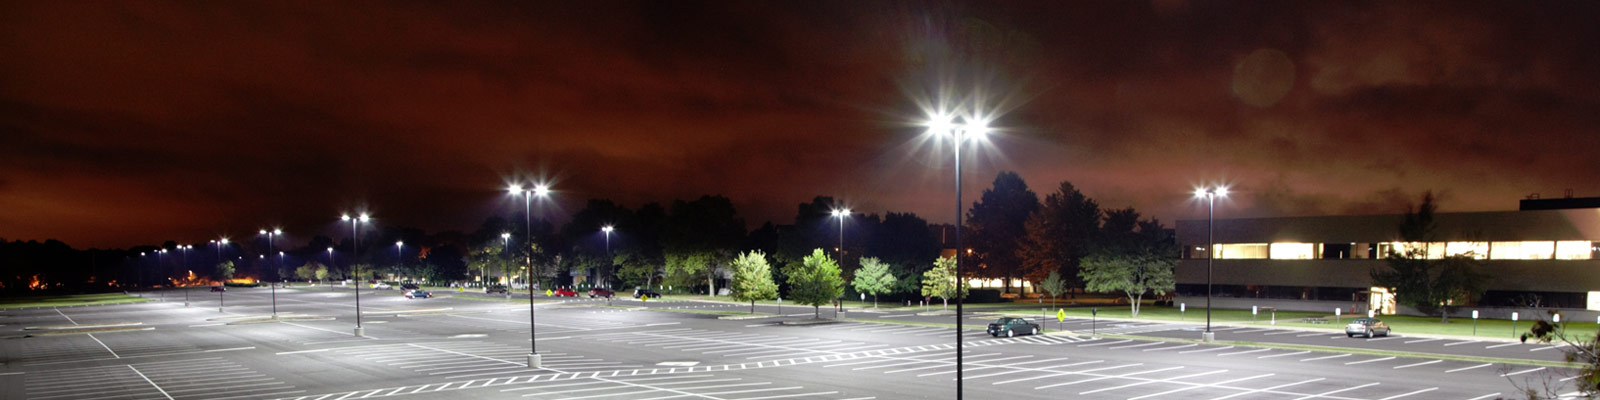 Parking-Lot-Lighting